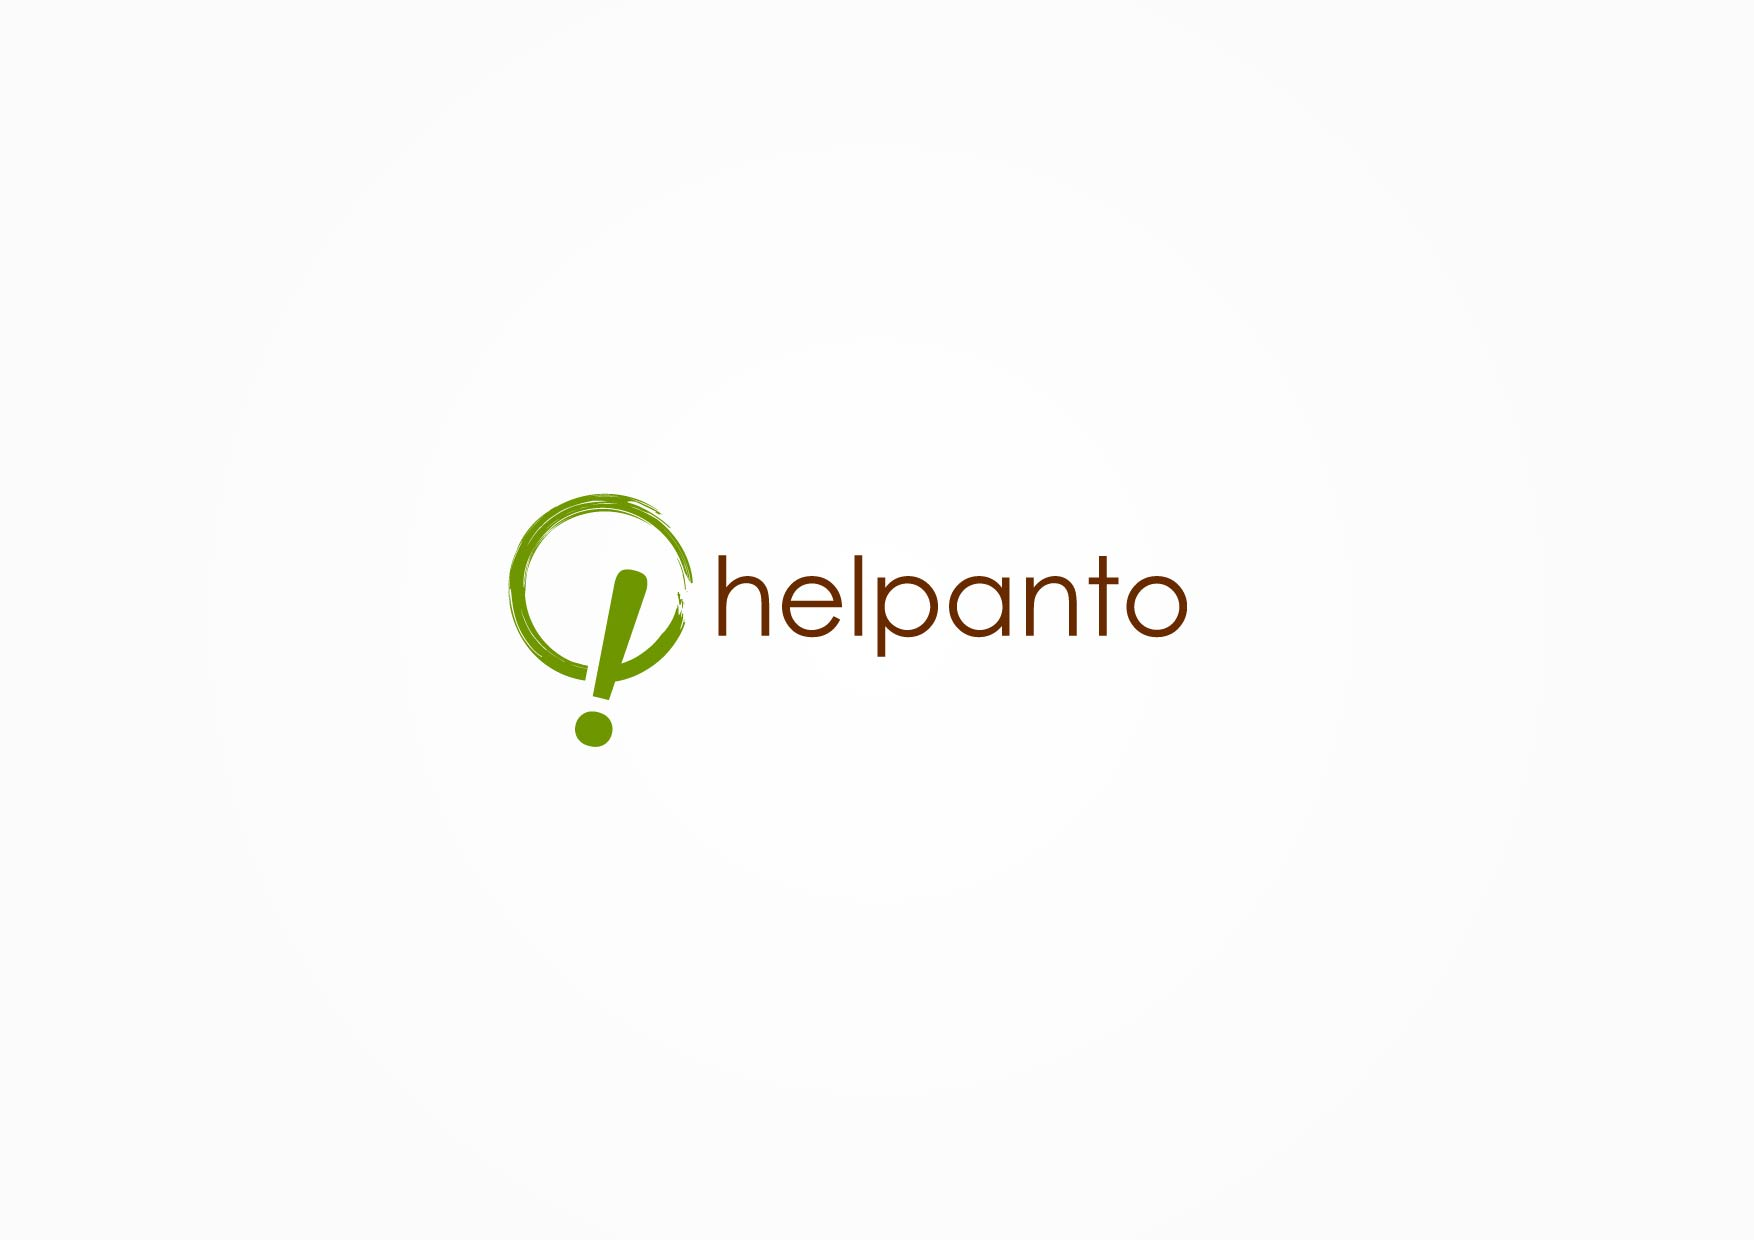 Logo Design by Osi Indra - Entry No. 49 in the Logo Design Contest Artistic Logo Design for helpanto.